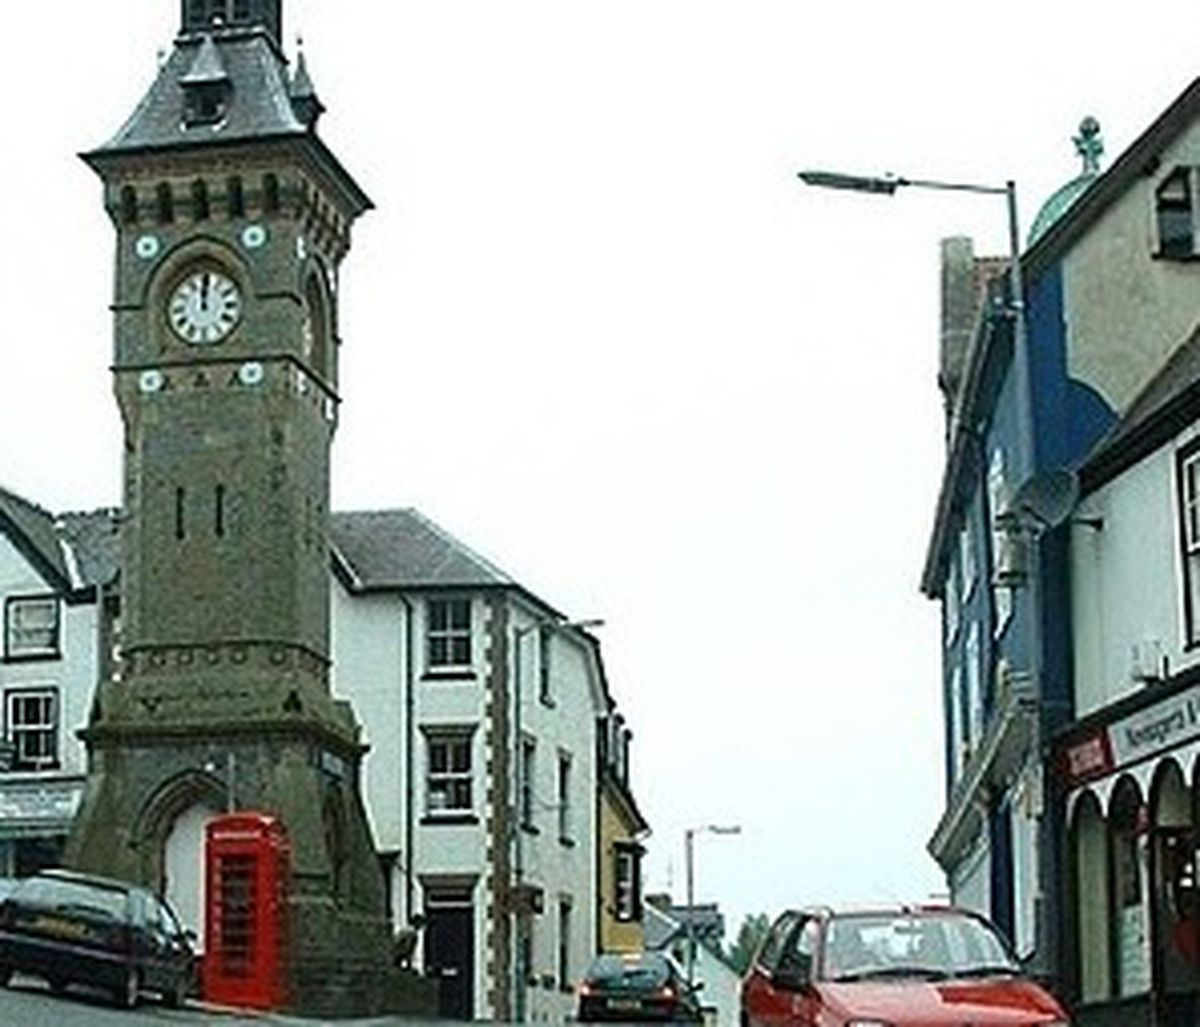 The meeting took place in Knighton.